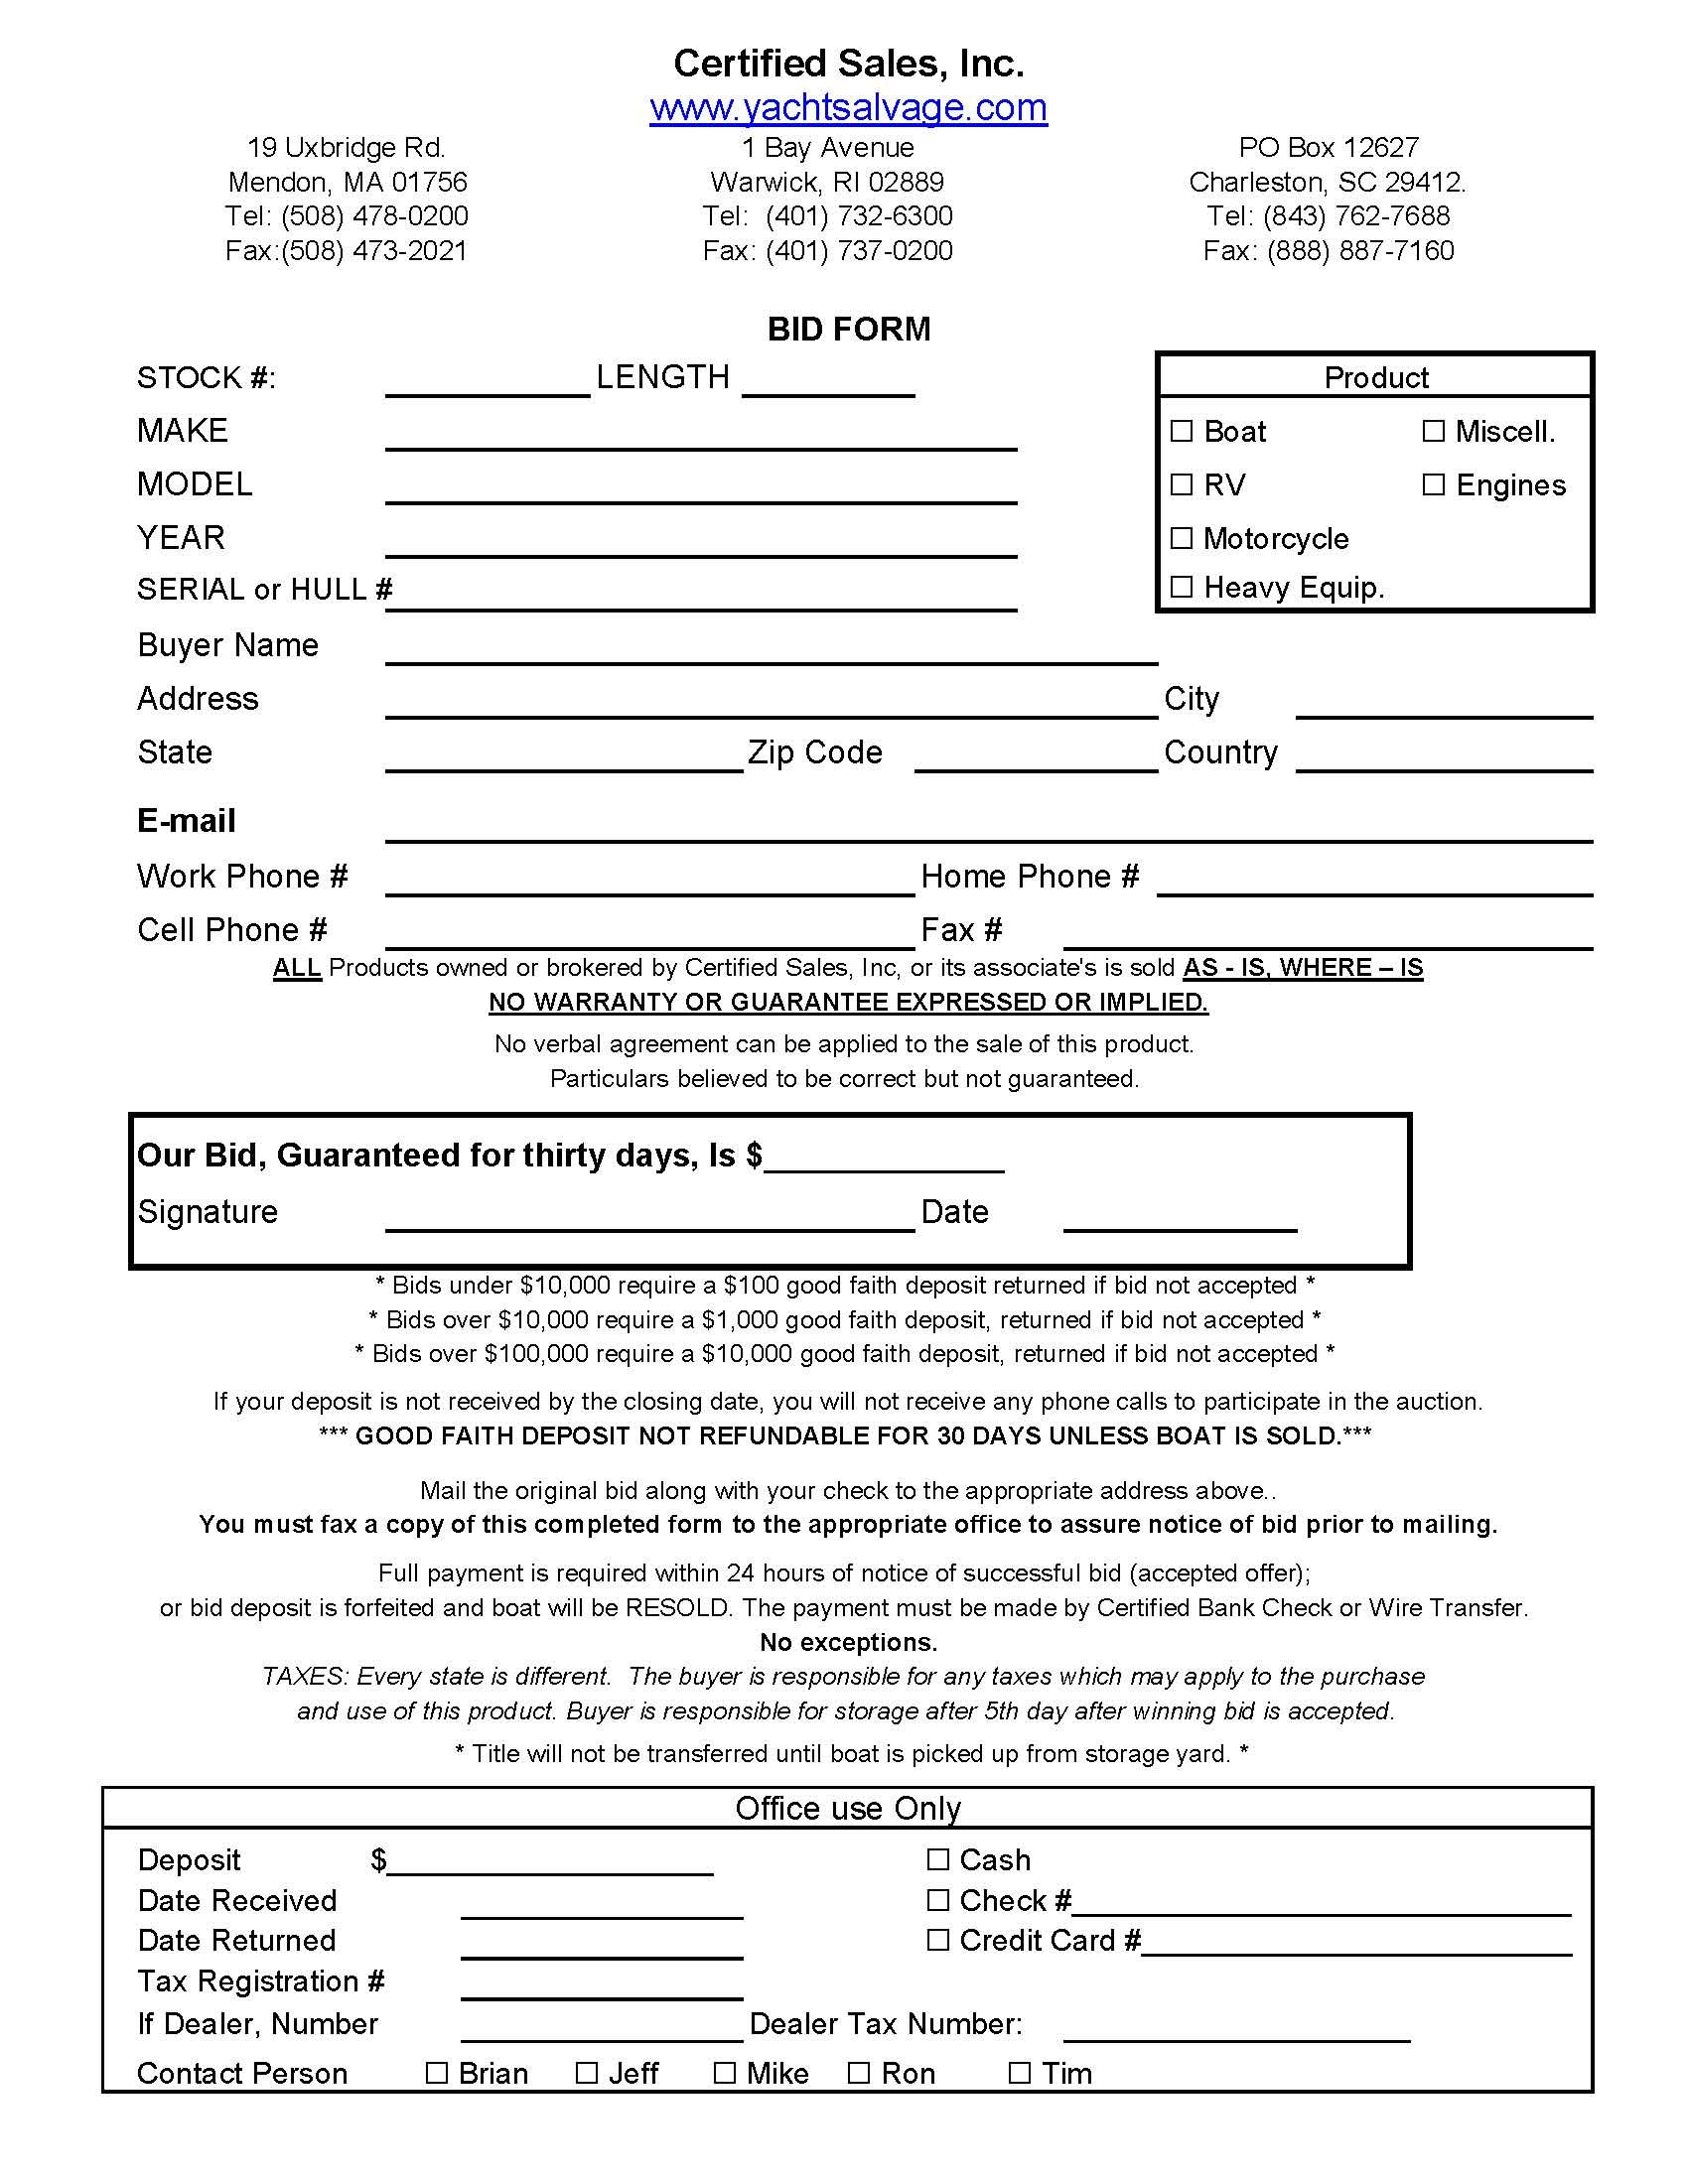 BidFormPageJpg  Bid Form  Legal Documents